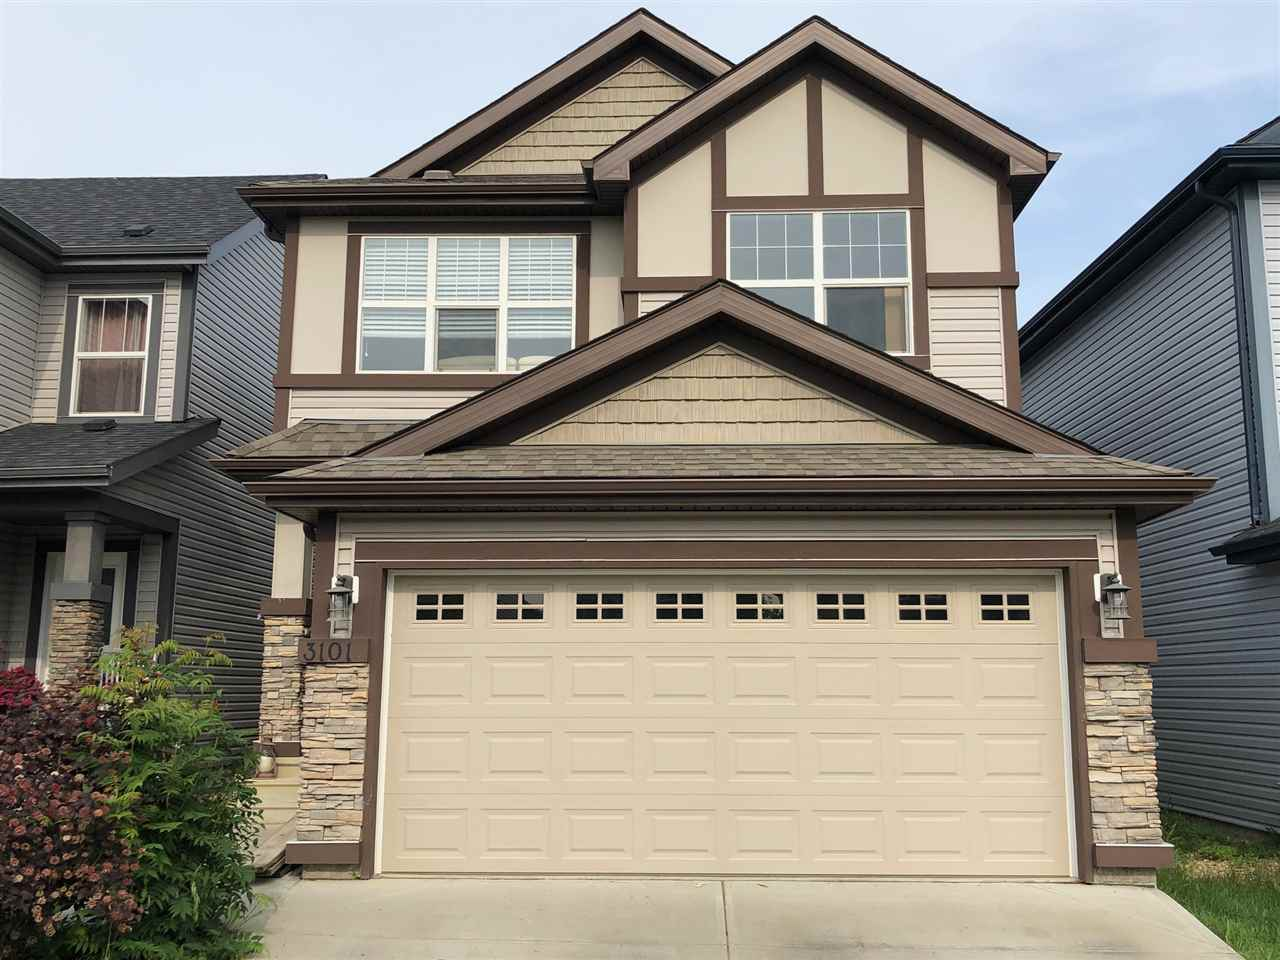 MLS® listing #E4166936 for sale located at 3101 ARTHURS Crescent